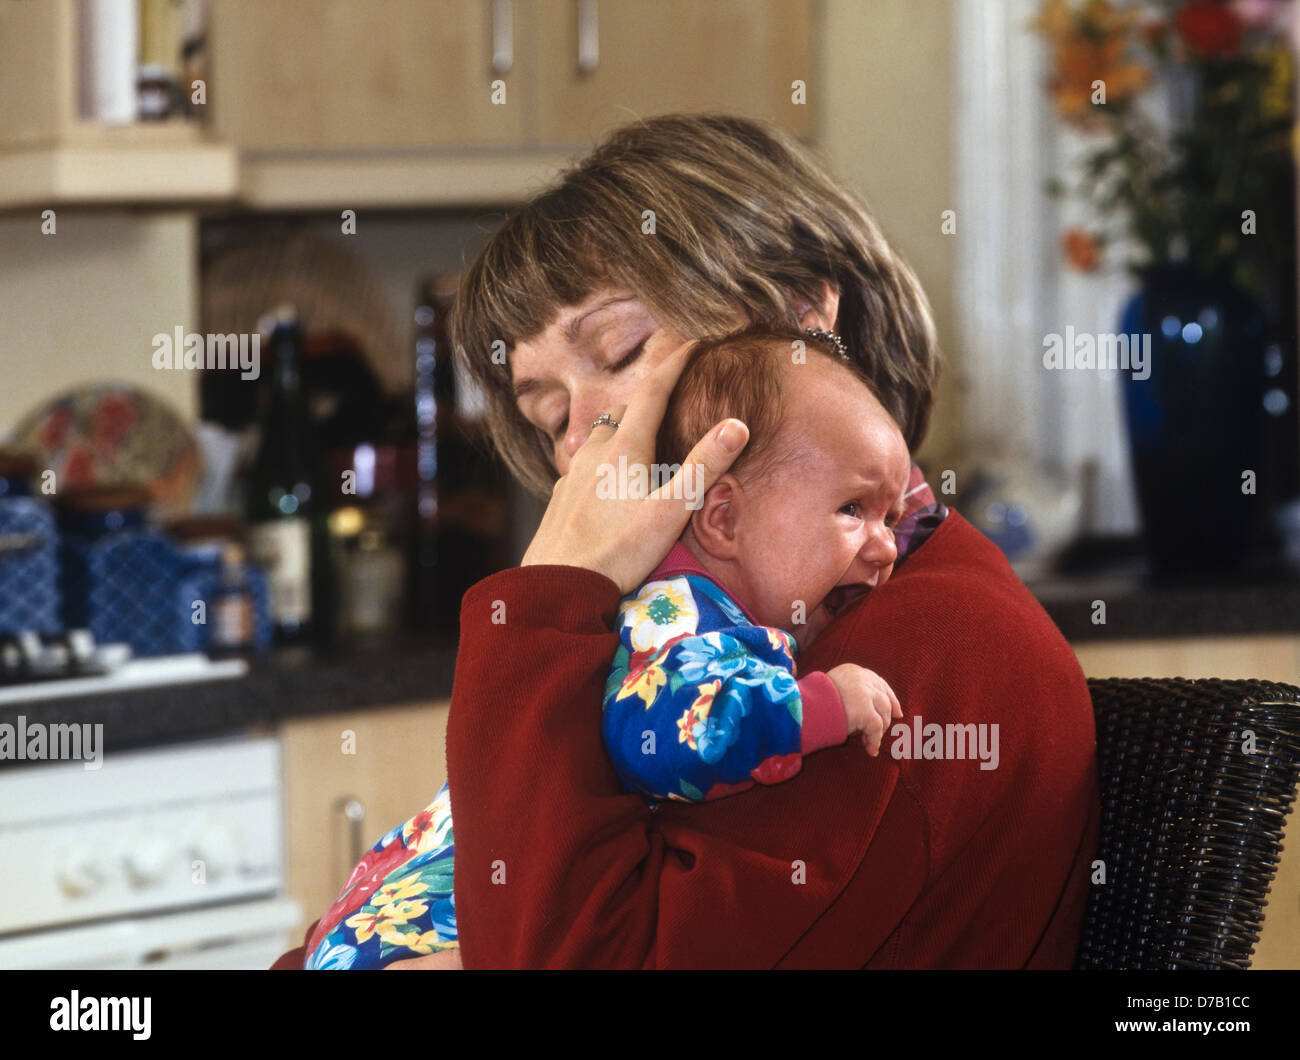 Mother cuddling crying baby (6 weeks old) in the kitchen - Stock Image